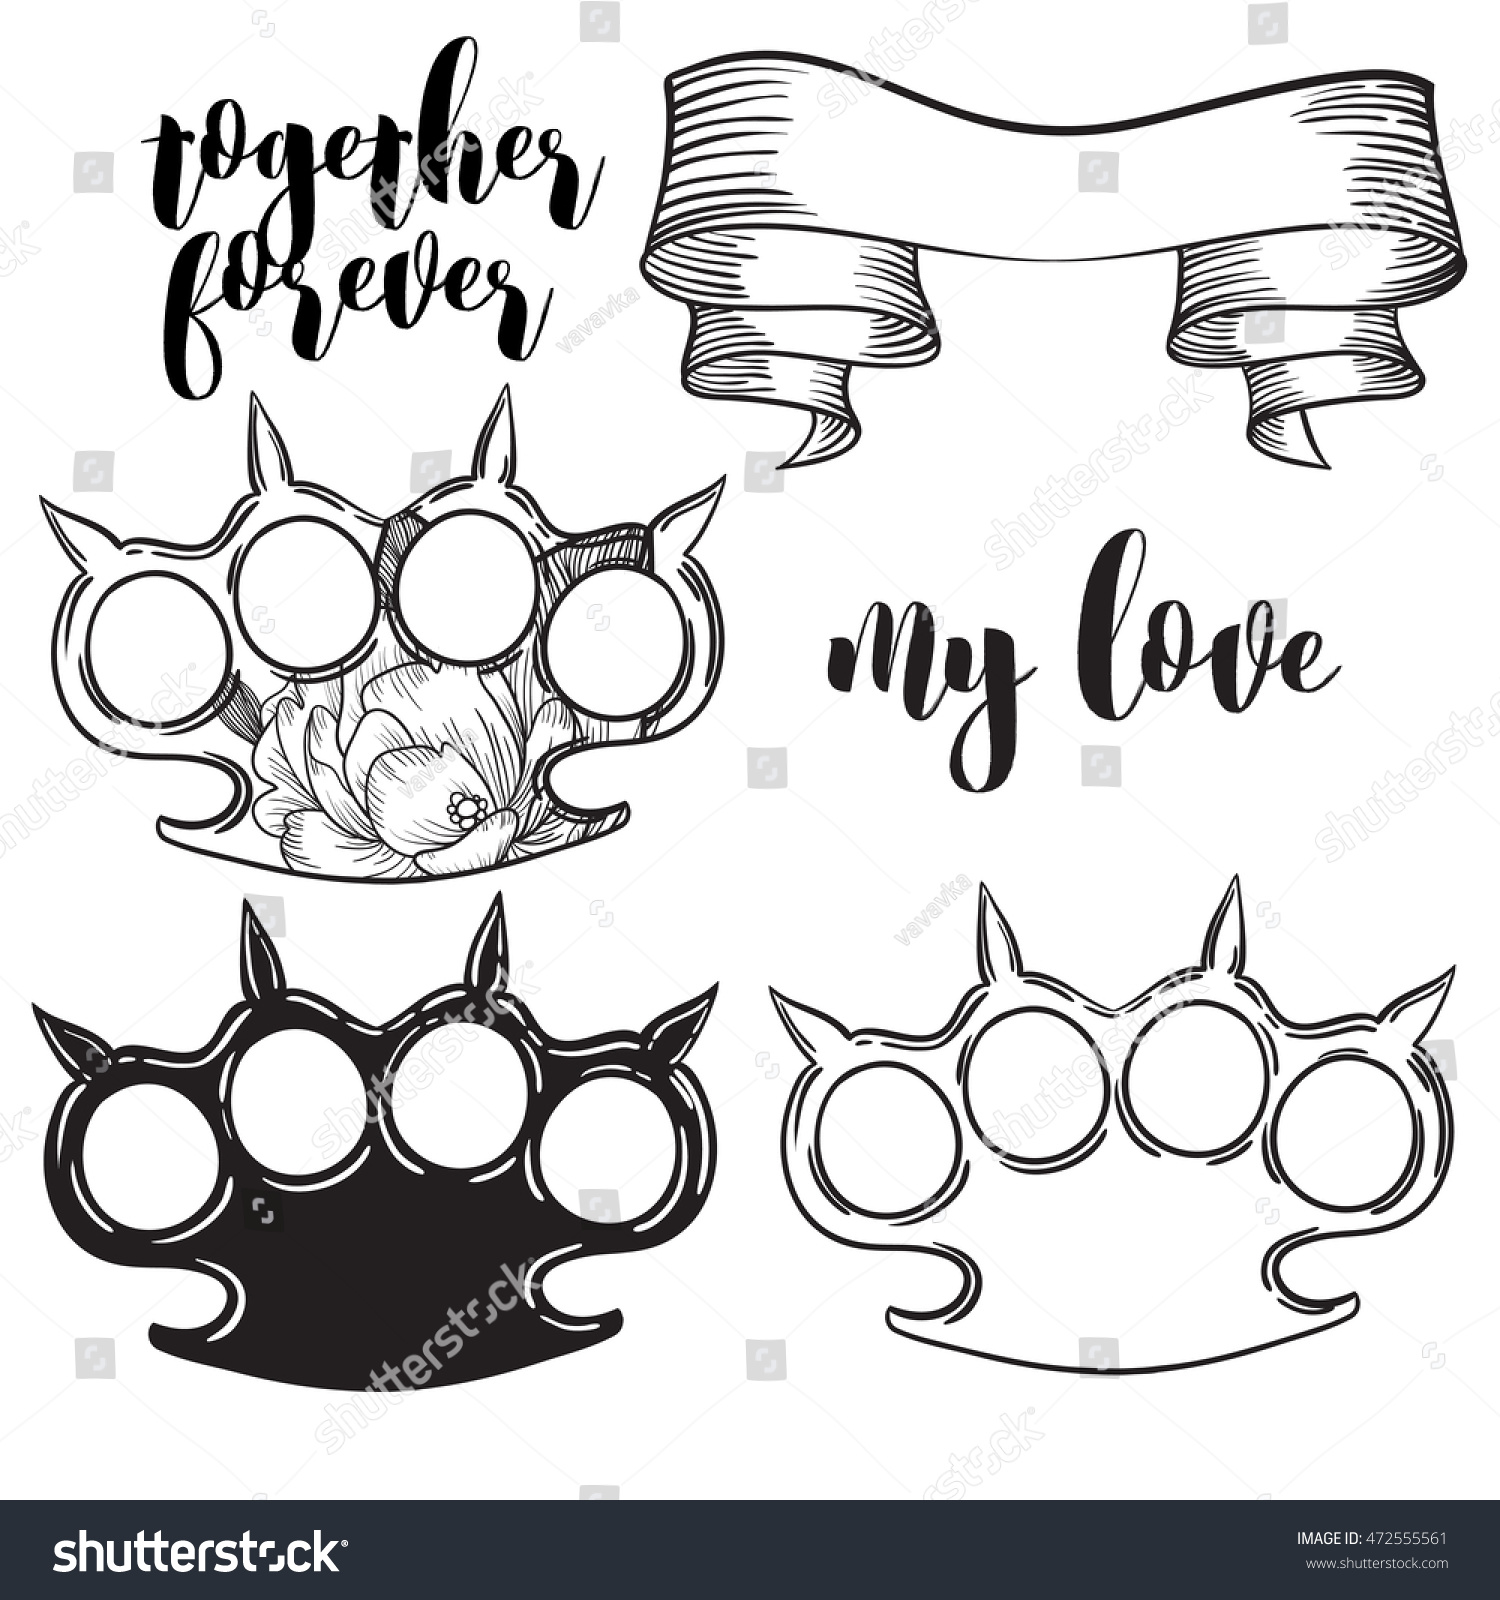 brass knuckles diagram afc neo wiring sr20det set old school tattoo stock vector royalty free of style with weapon illustration